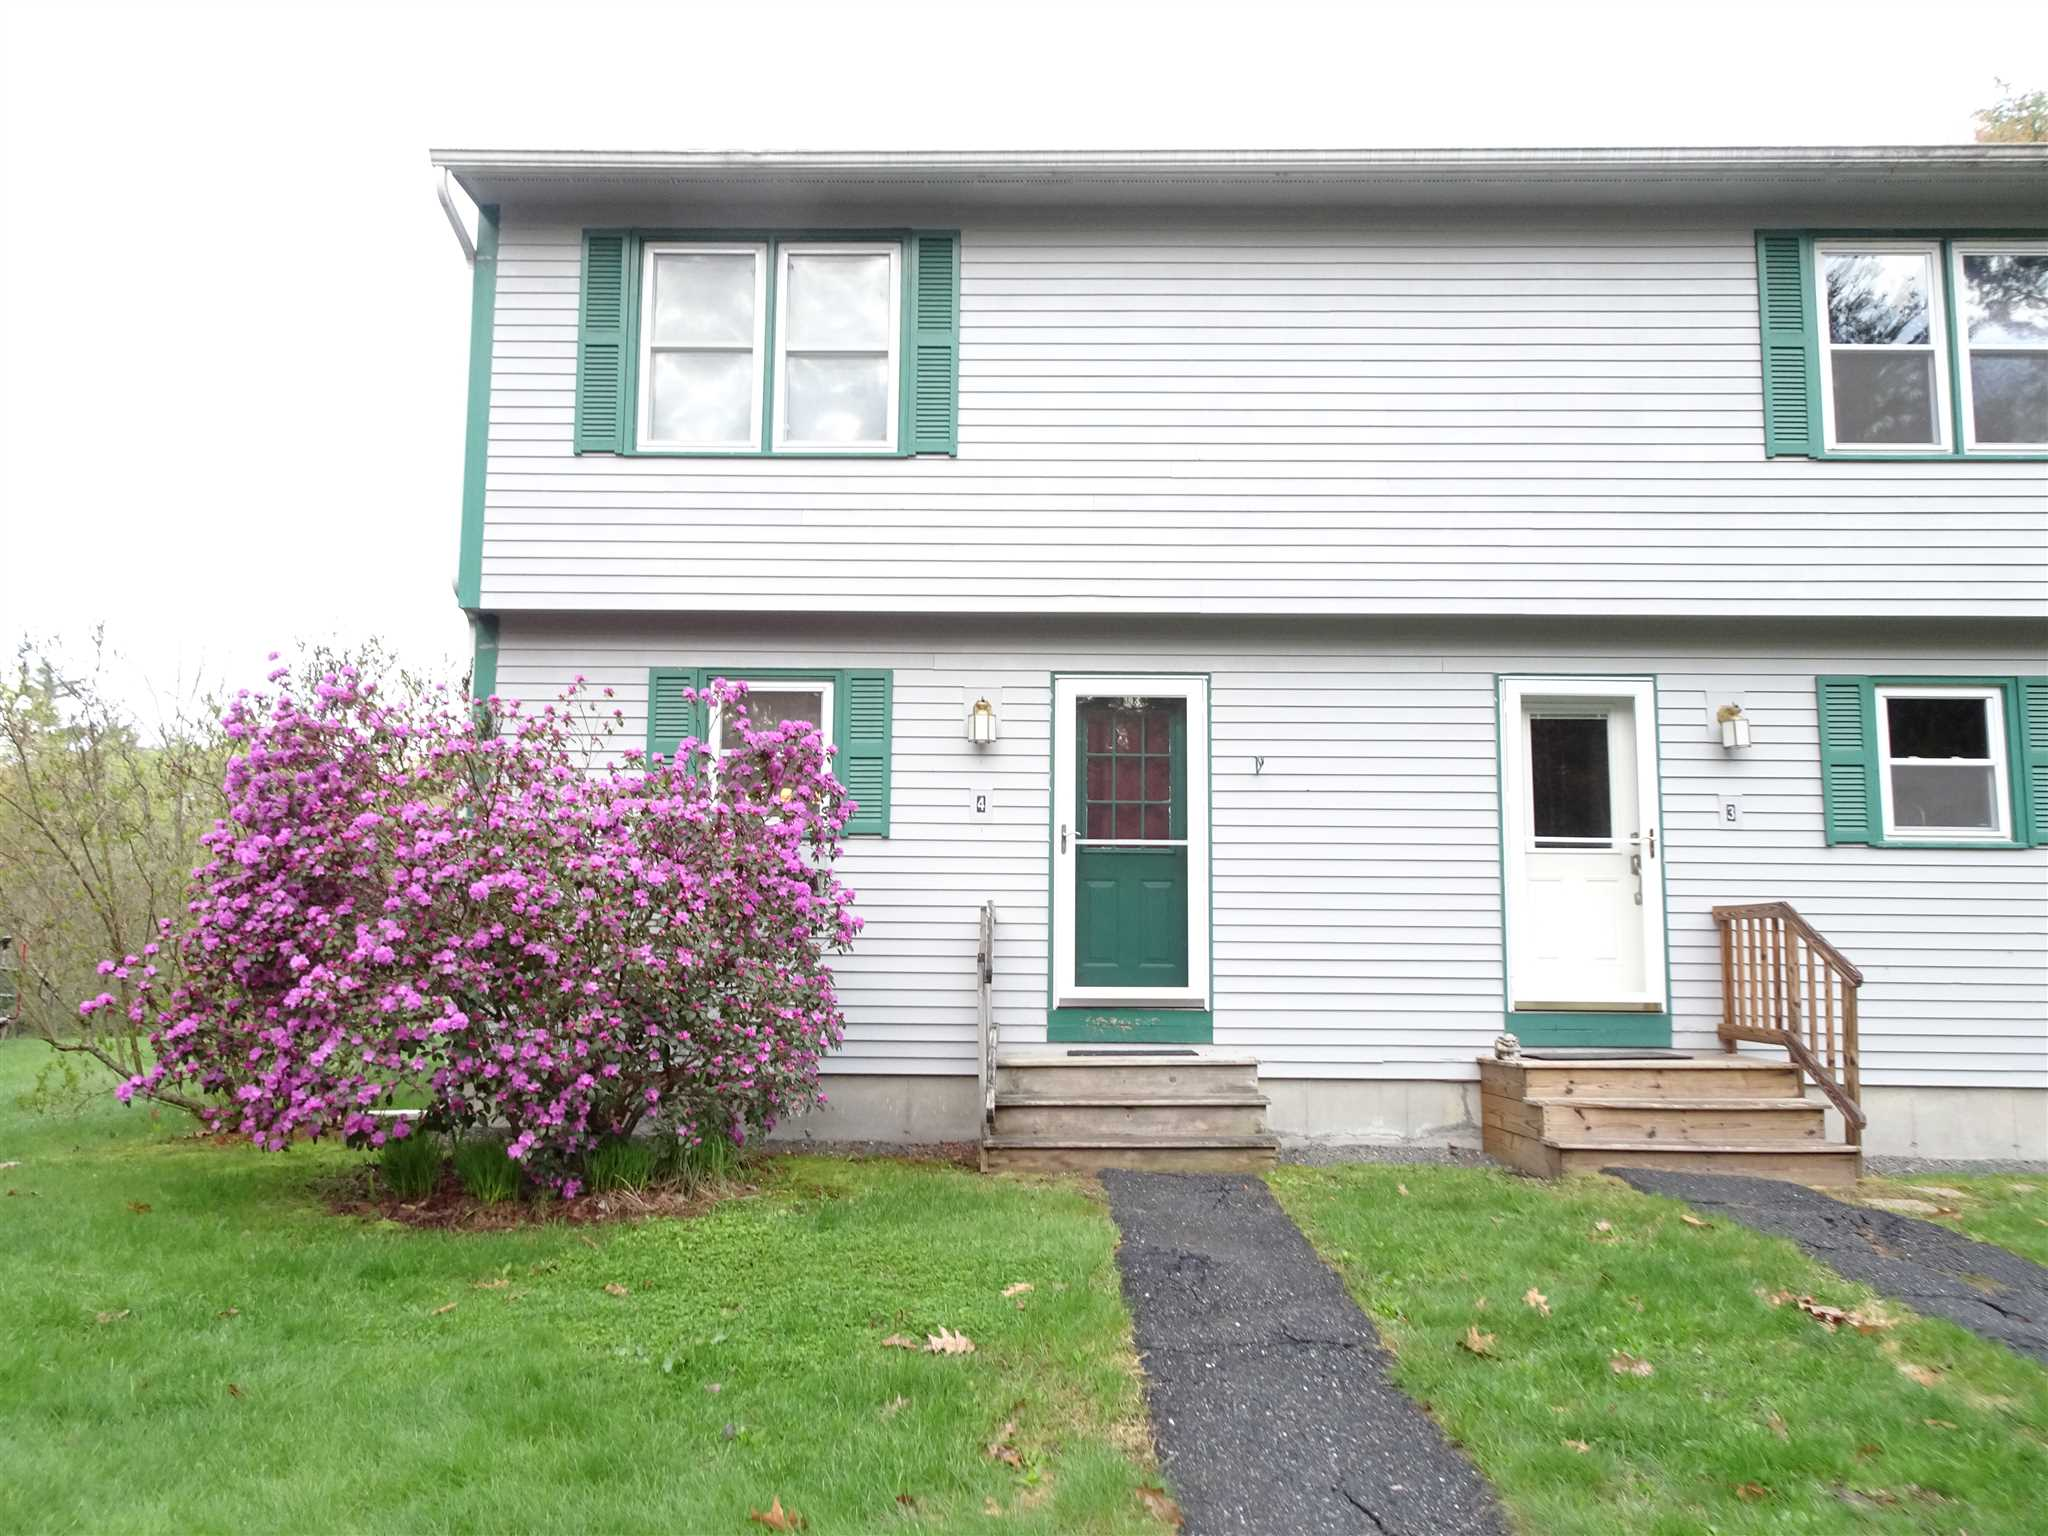 MLS 4797263: 10 Chester Lane, Enfield NH